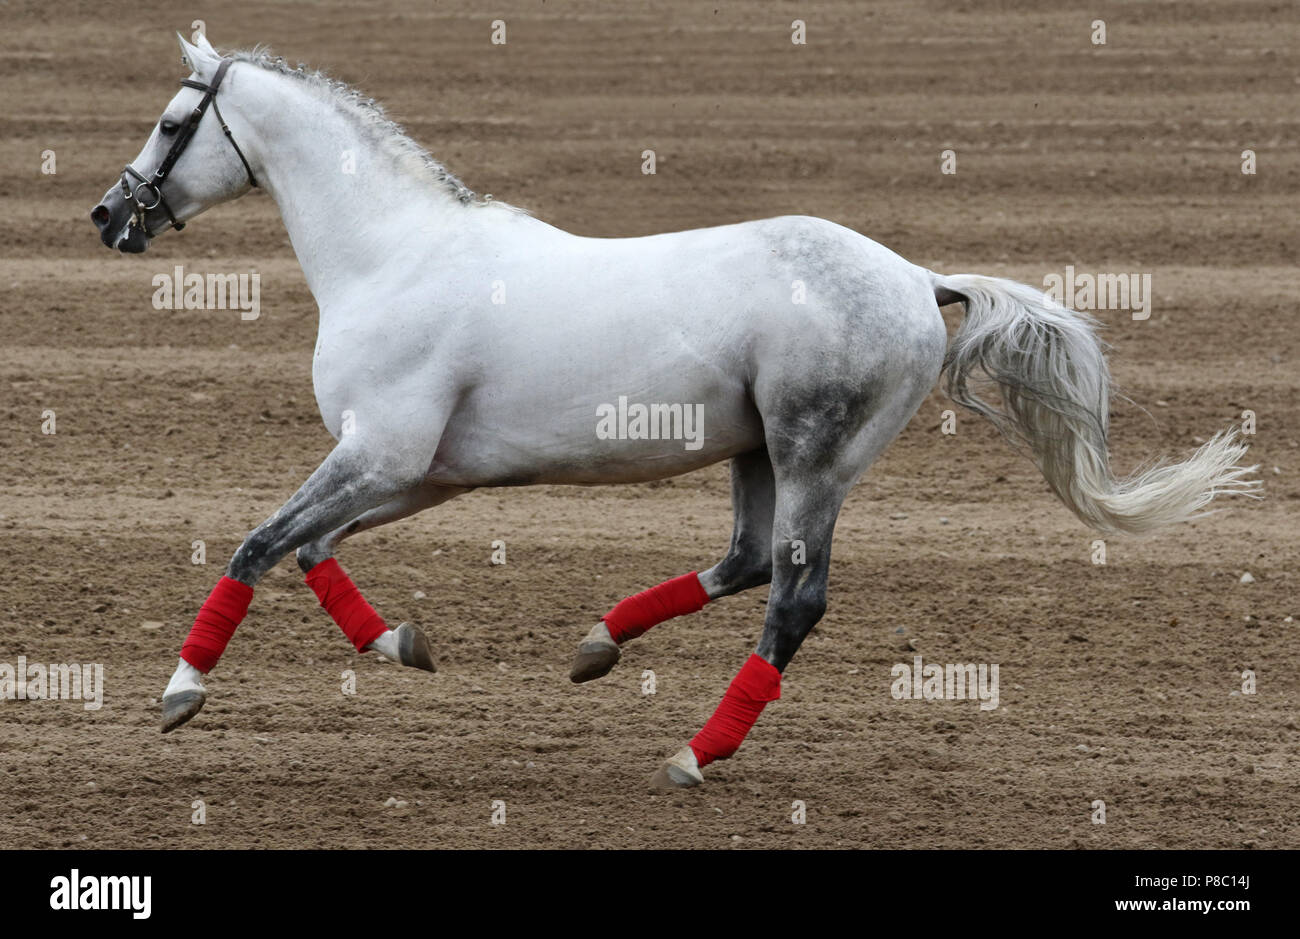 Studded Ganschow, Trakehner stallion Cousteau galloping - Stock Image